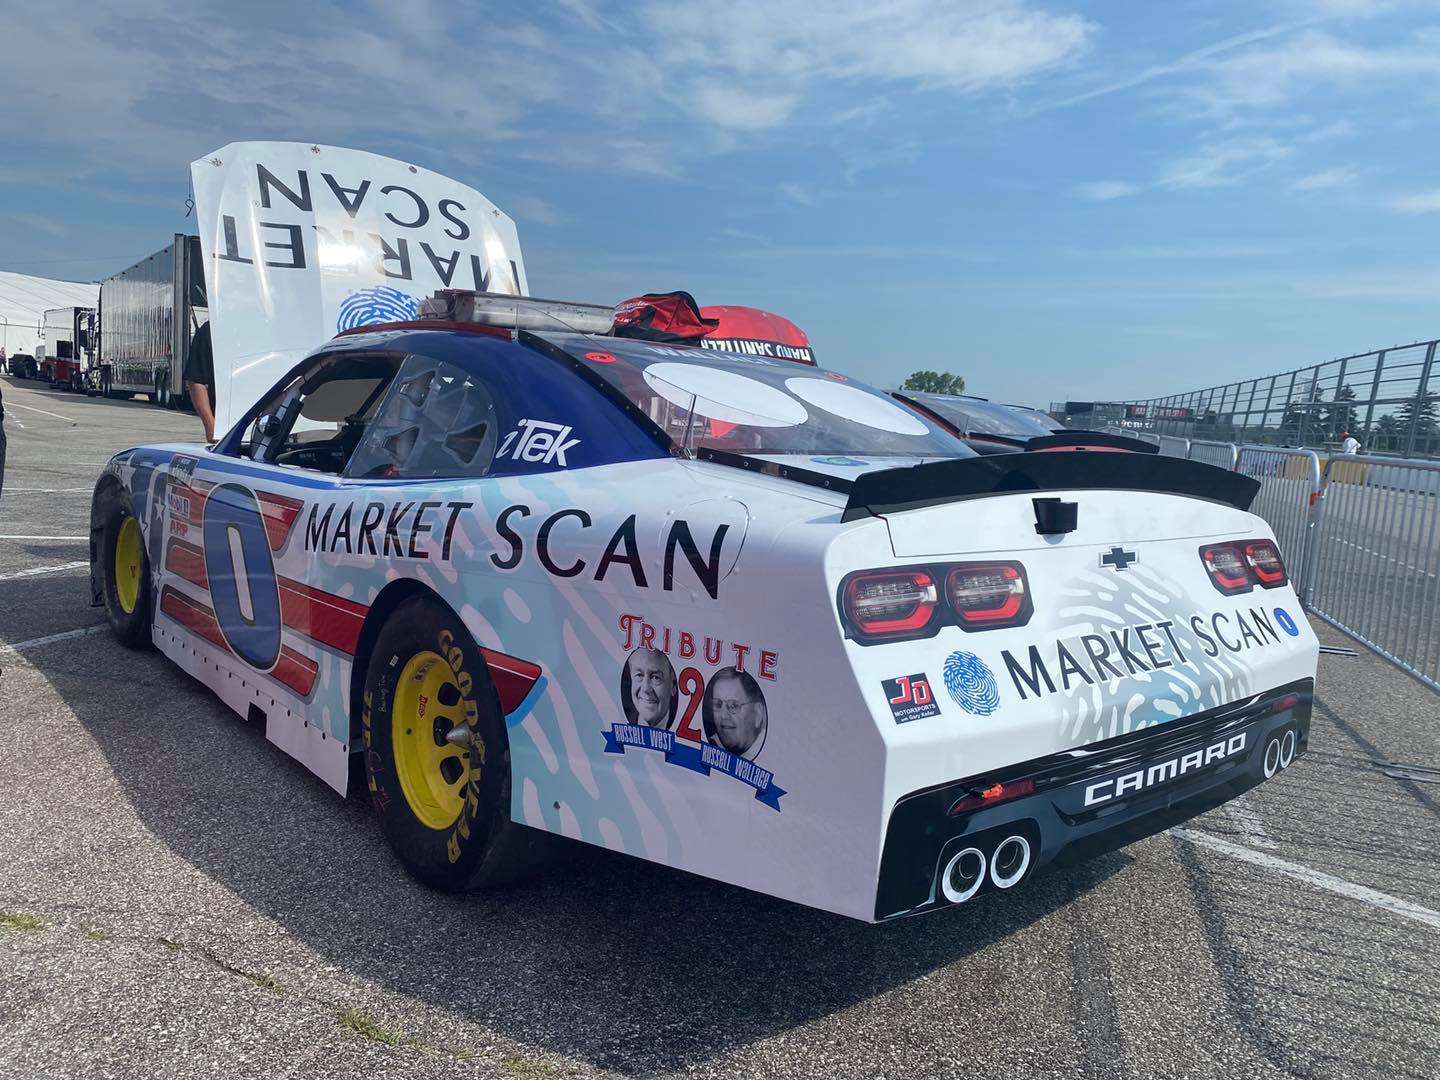 Mike Wallace - Market Scan car